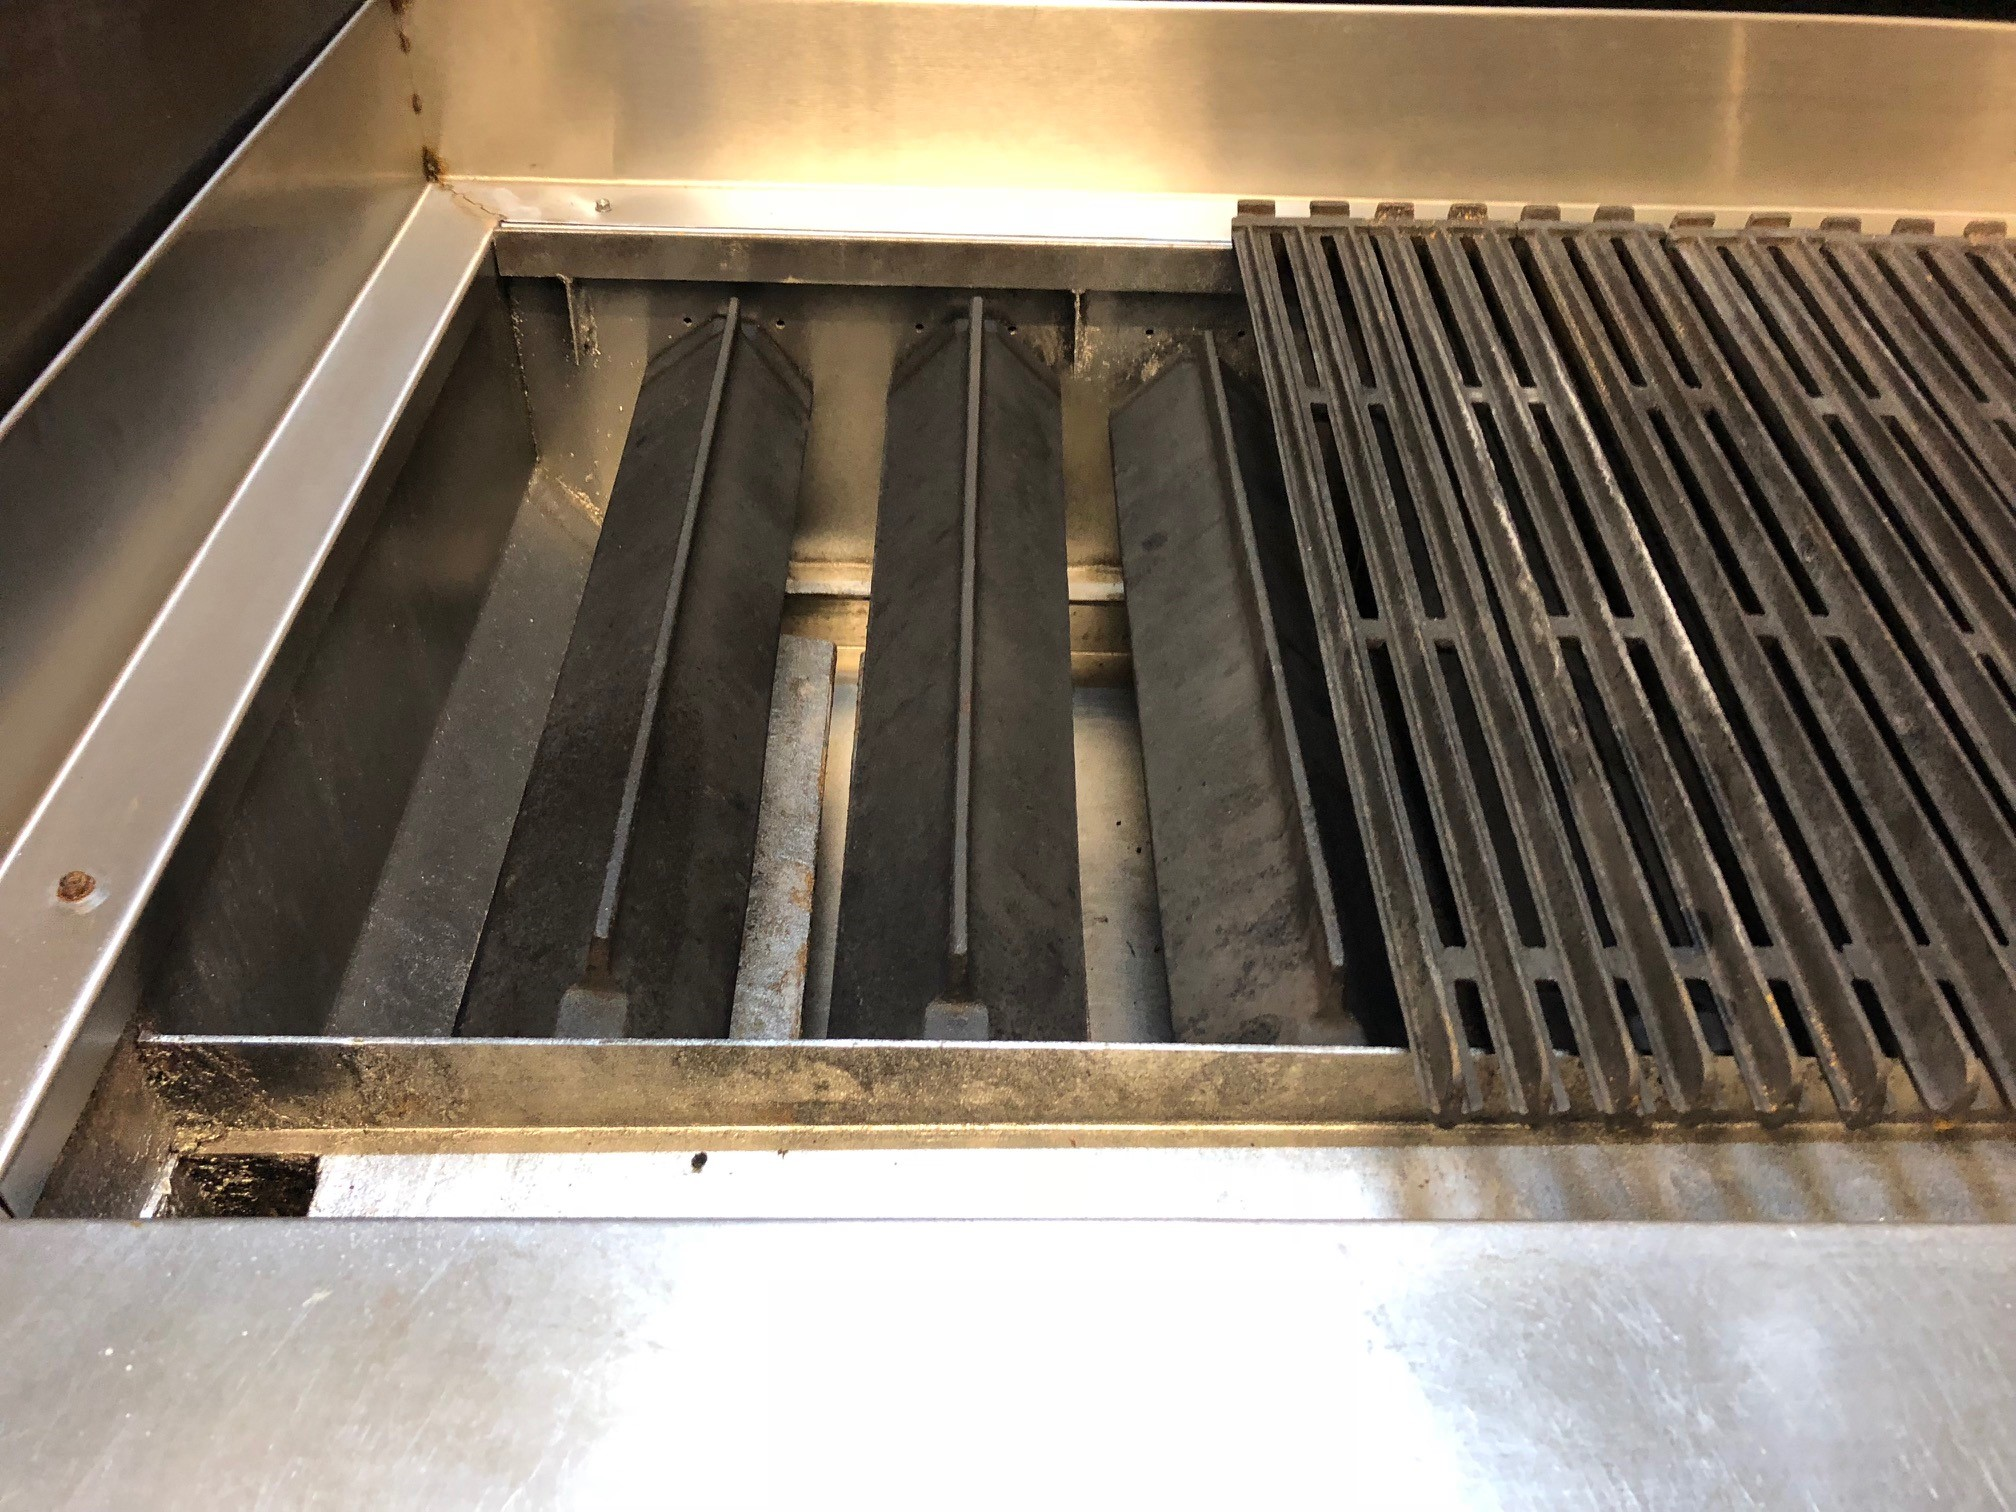 Imperial Charcoal Grill 8 Burner 1 2m Counter Top Radiant